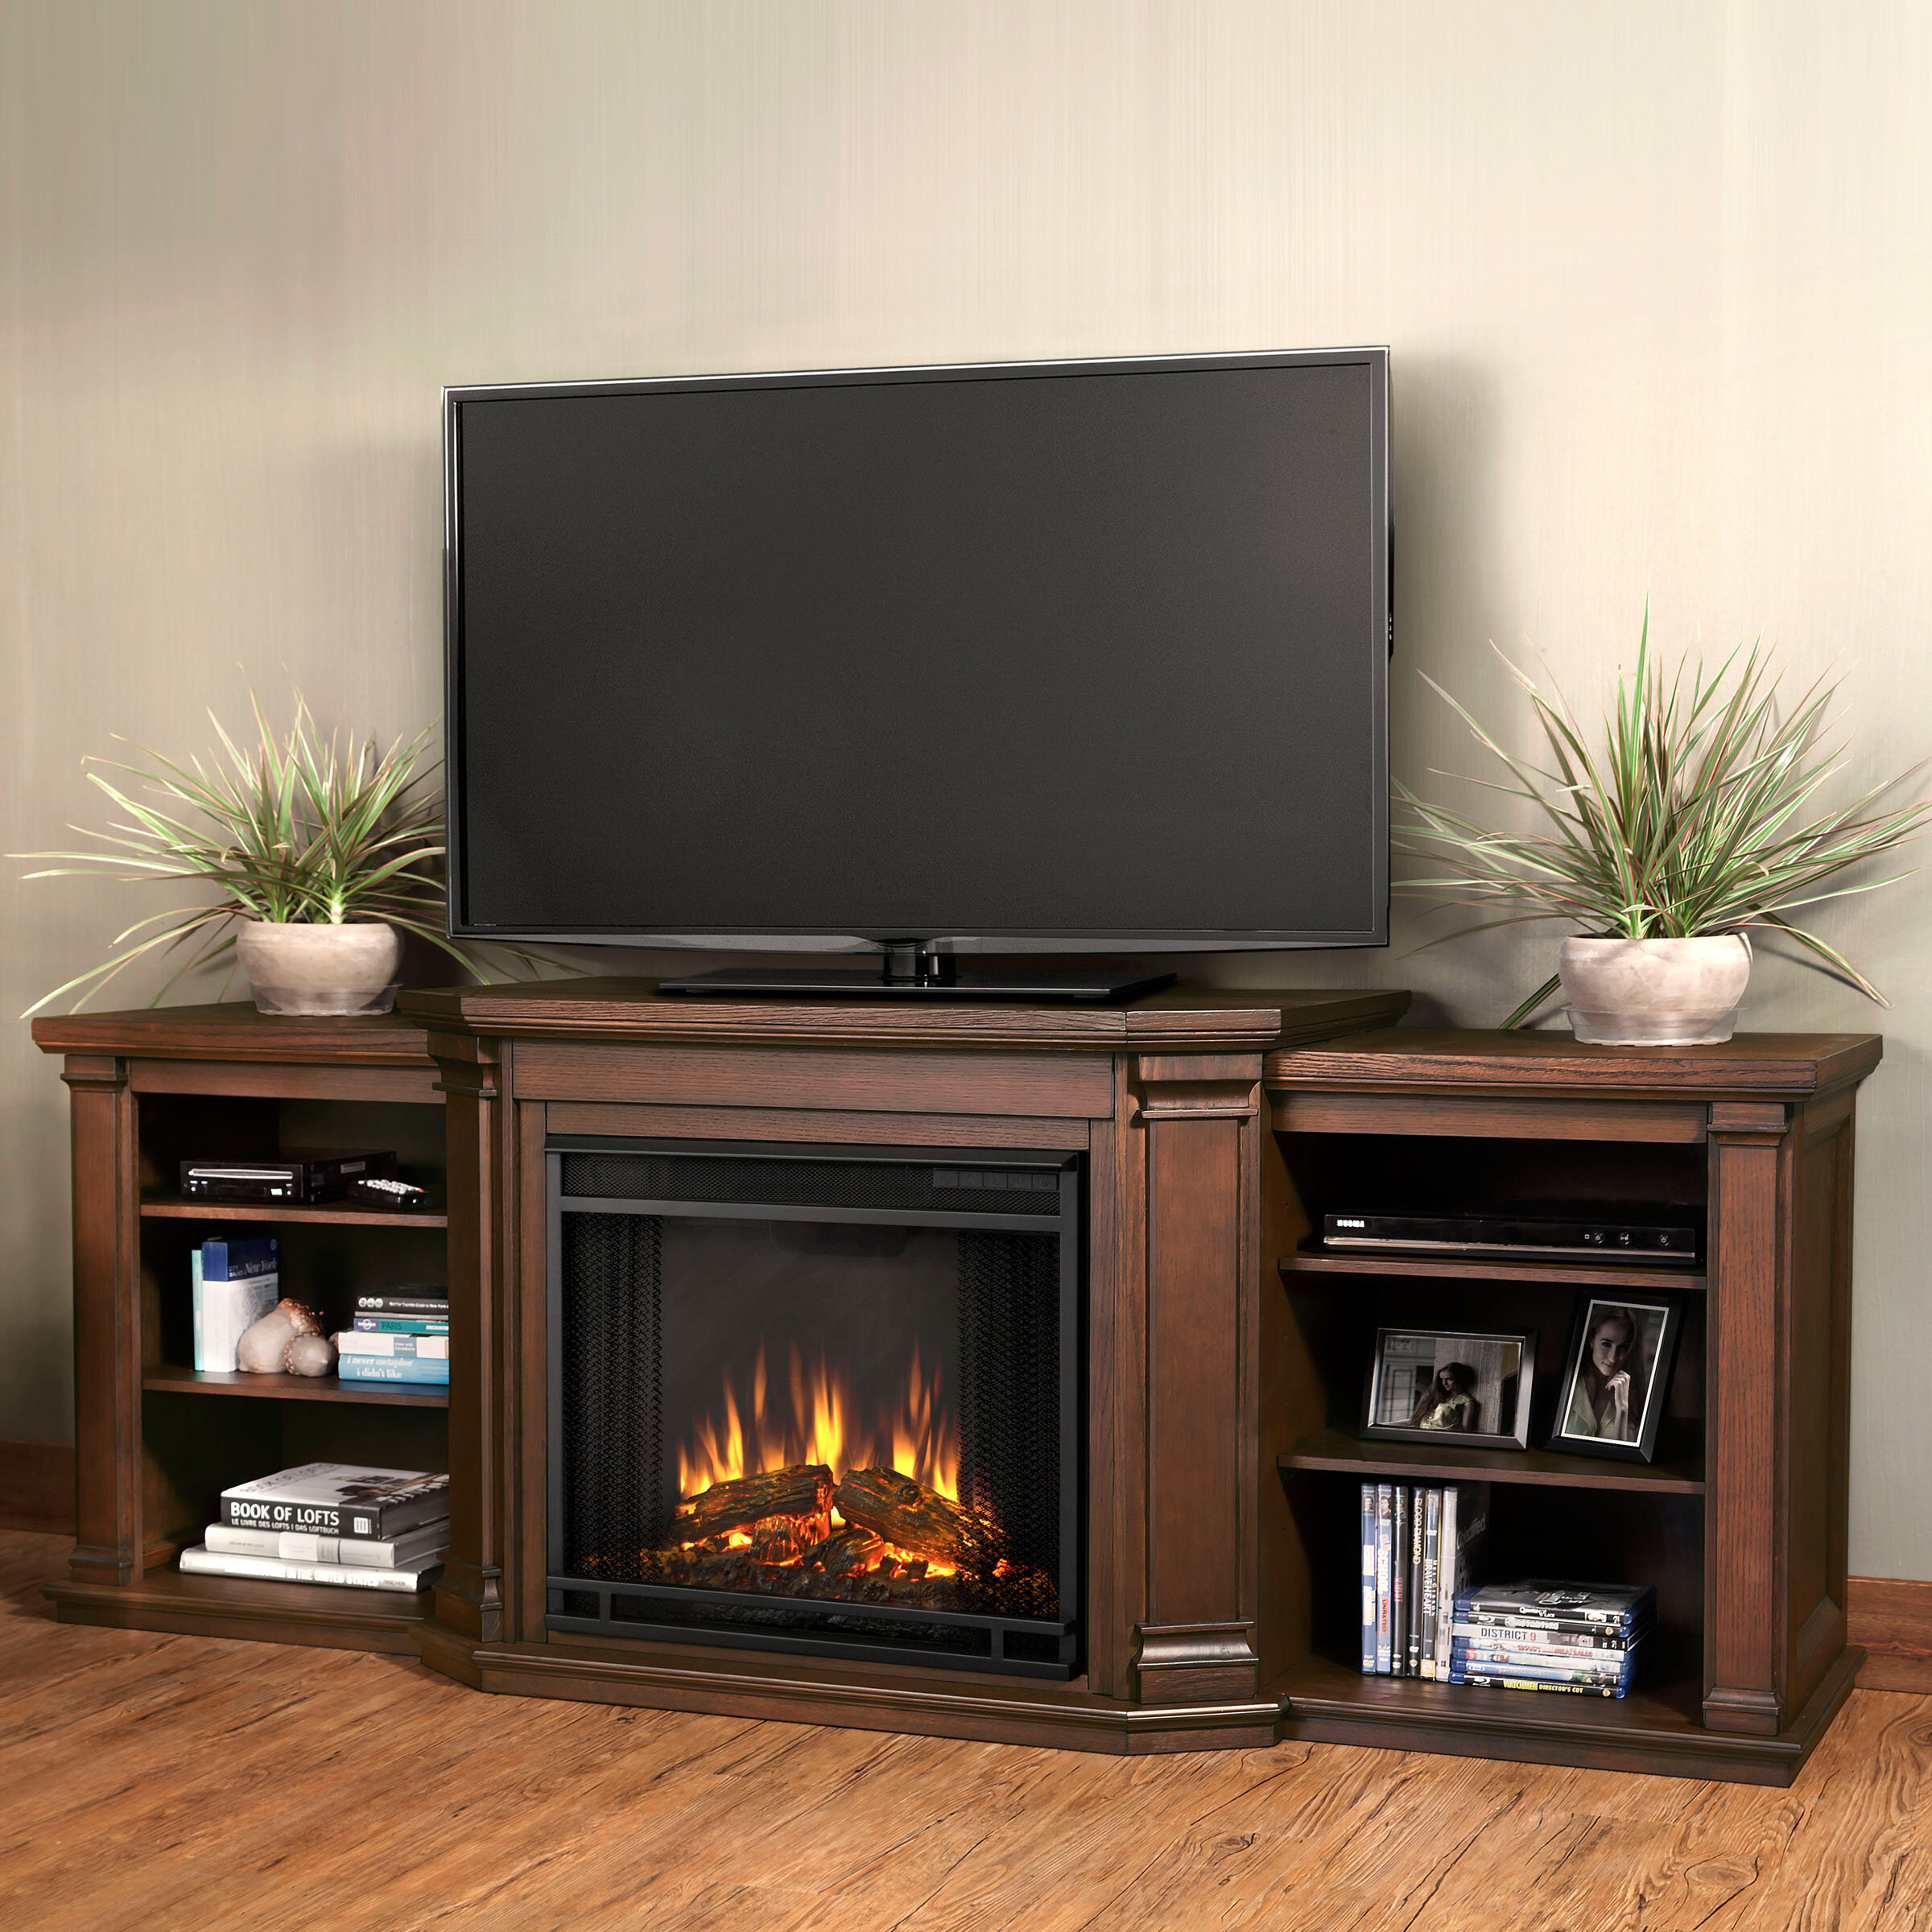 Terrific Valmont Tv Stand For Tvs Up To 75 With Fireplace Download Free Architecture Designs Ponolprimenicaraguapropertycom